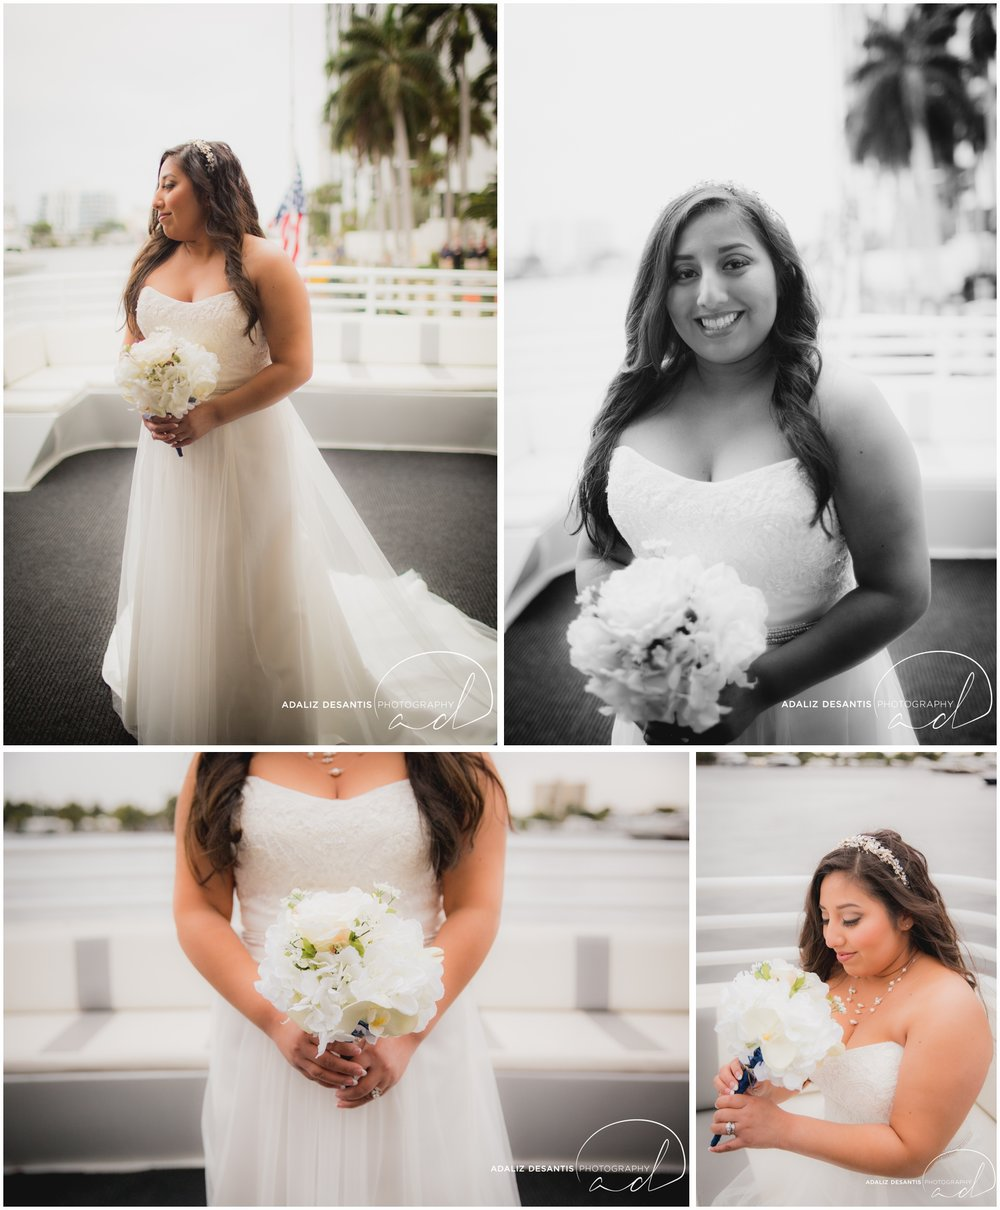 Taylor and amanda Indiana Fort Lauderdale Sun Dream yacht charter wedding 6